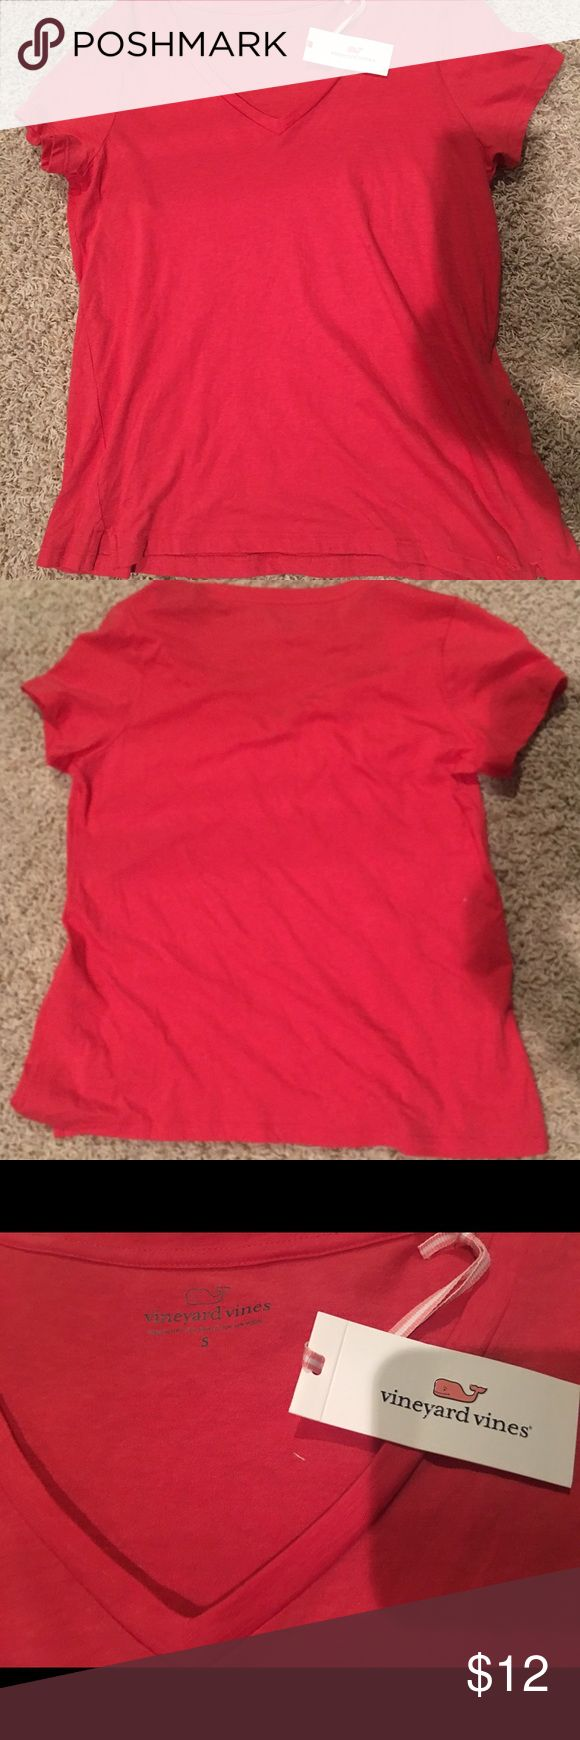 Vineyard Vines every day tee Vineyard Vines coral red every day women's tee shirt. New with tags. 100% authentic Vineyard Vines Tops Tees - Short Sleeve